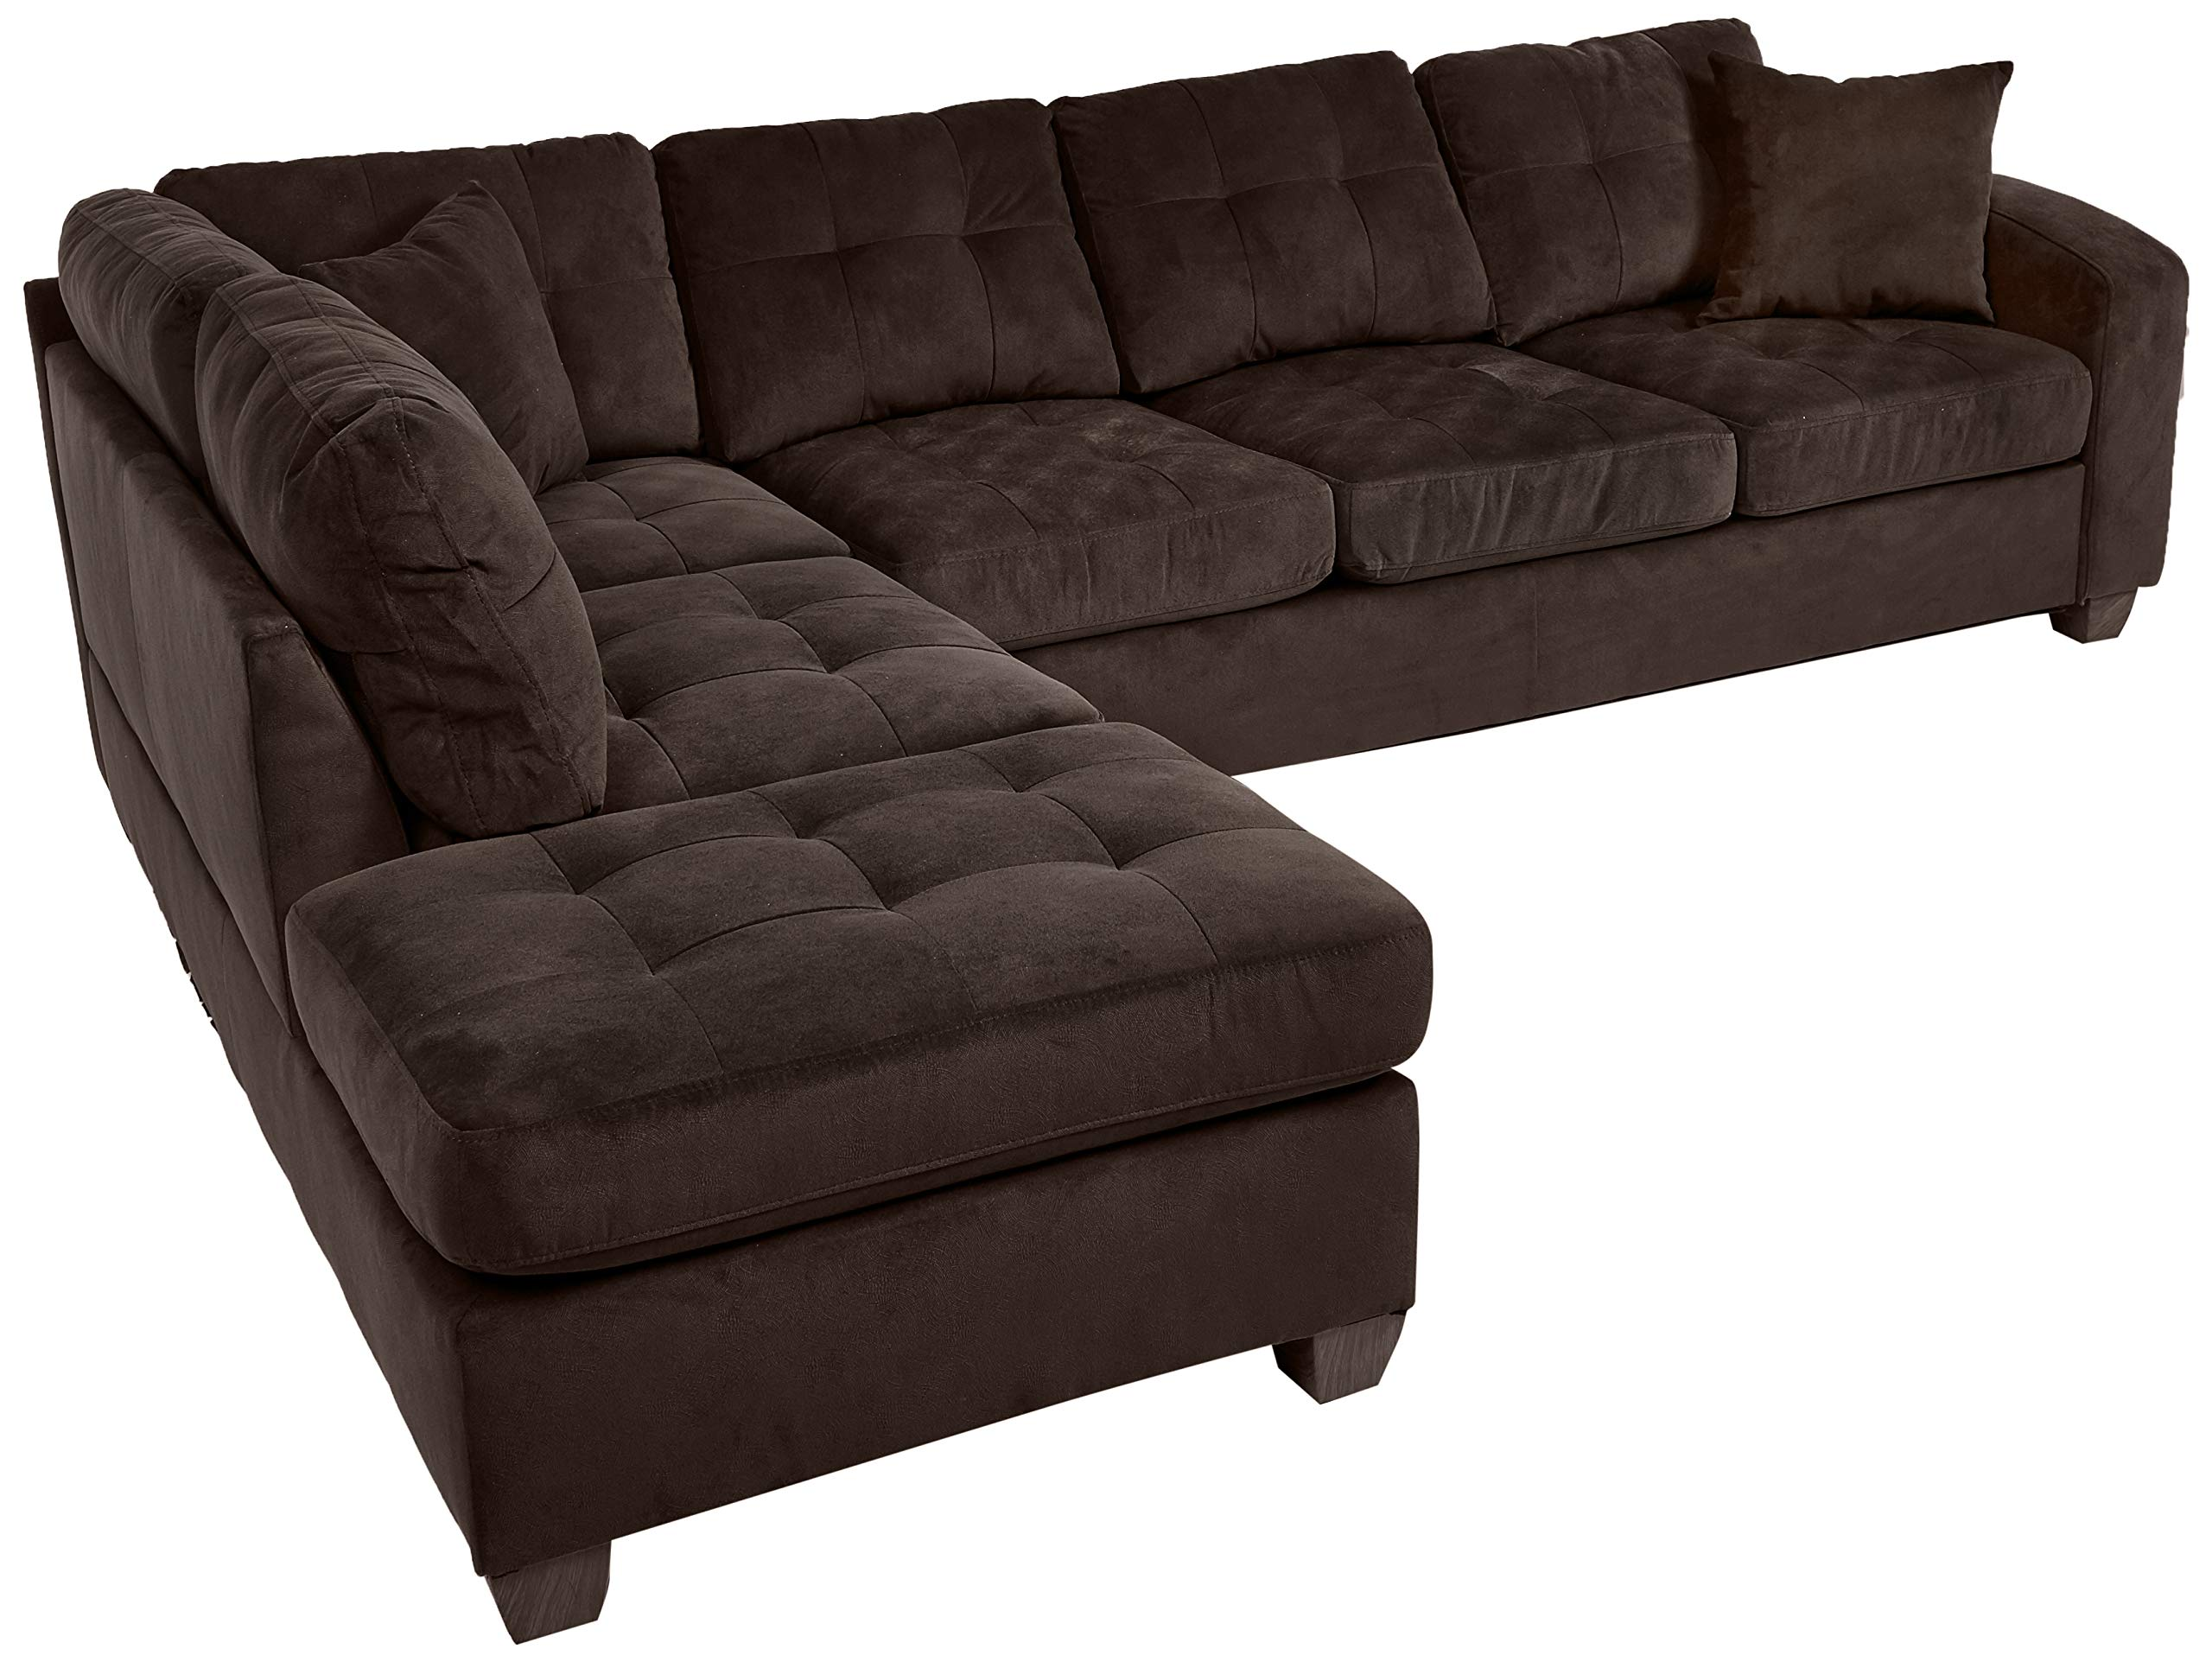 chocolate brown sectional couches amazon com rh amazon com sierra chocolate brown microfiber sectional sofa chocolate leather sectional sofa